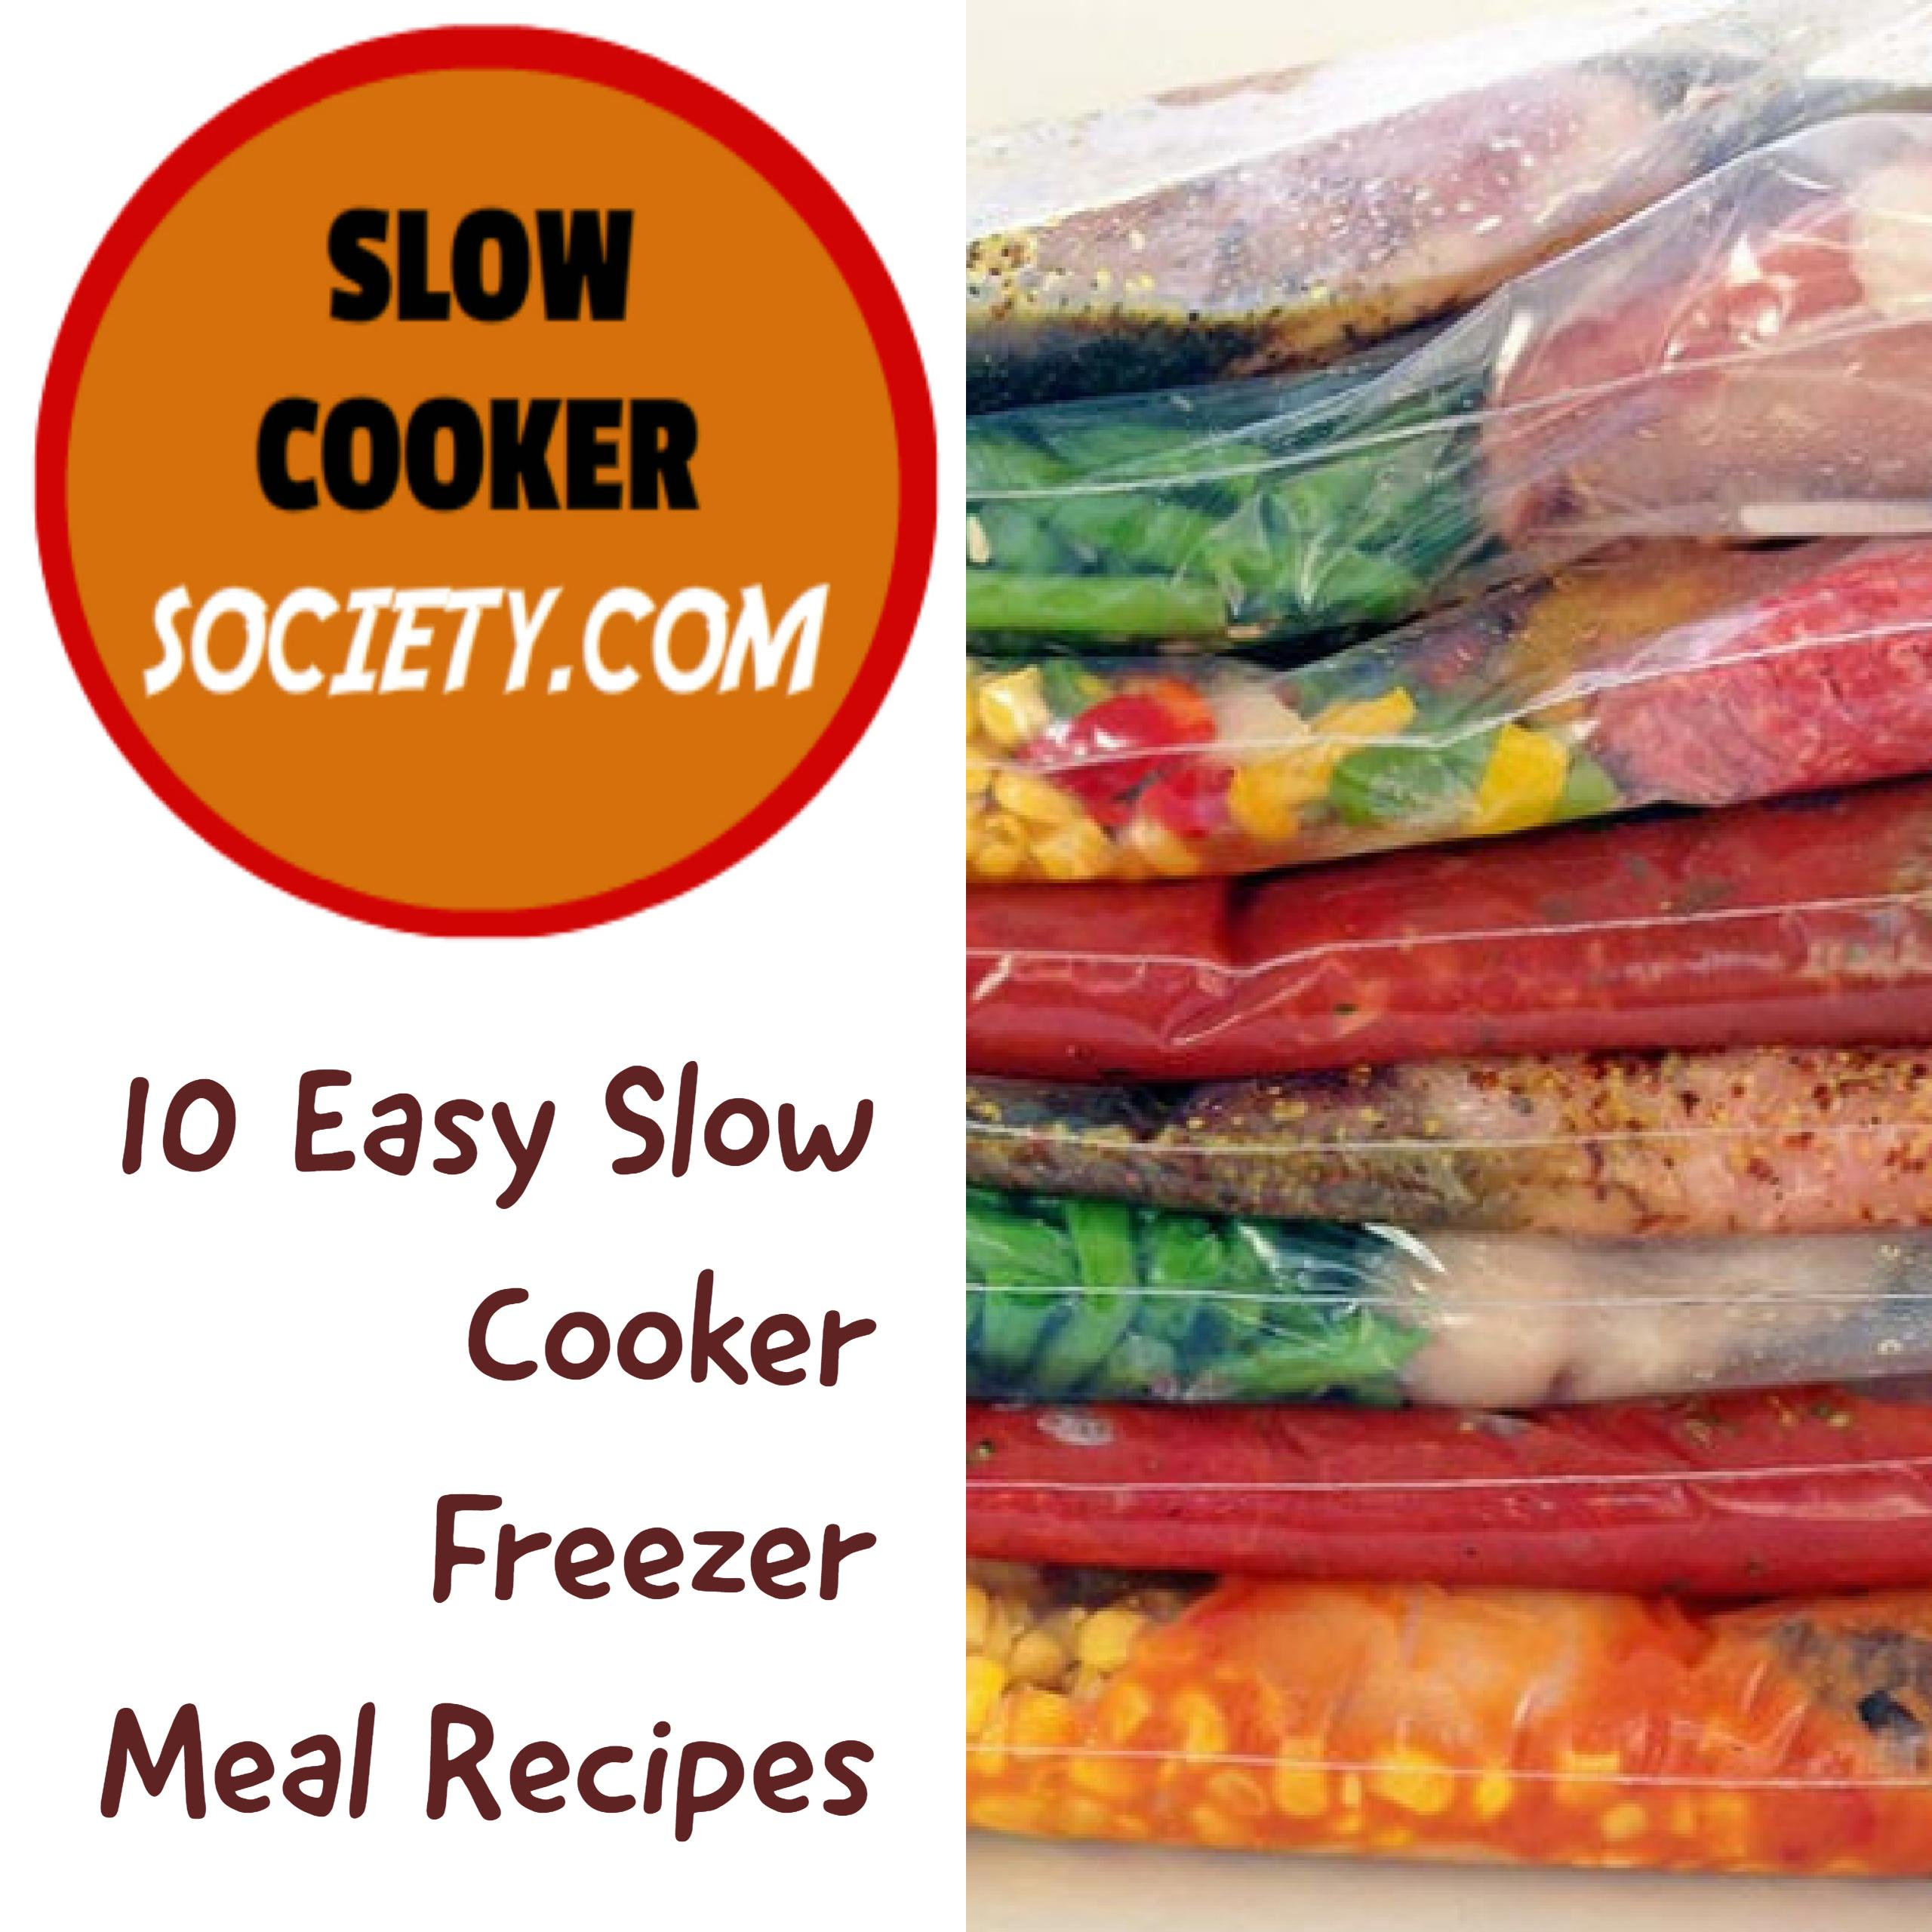 10 Easy Slow Cooker Freezer Meal Recipes